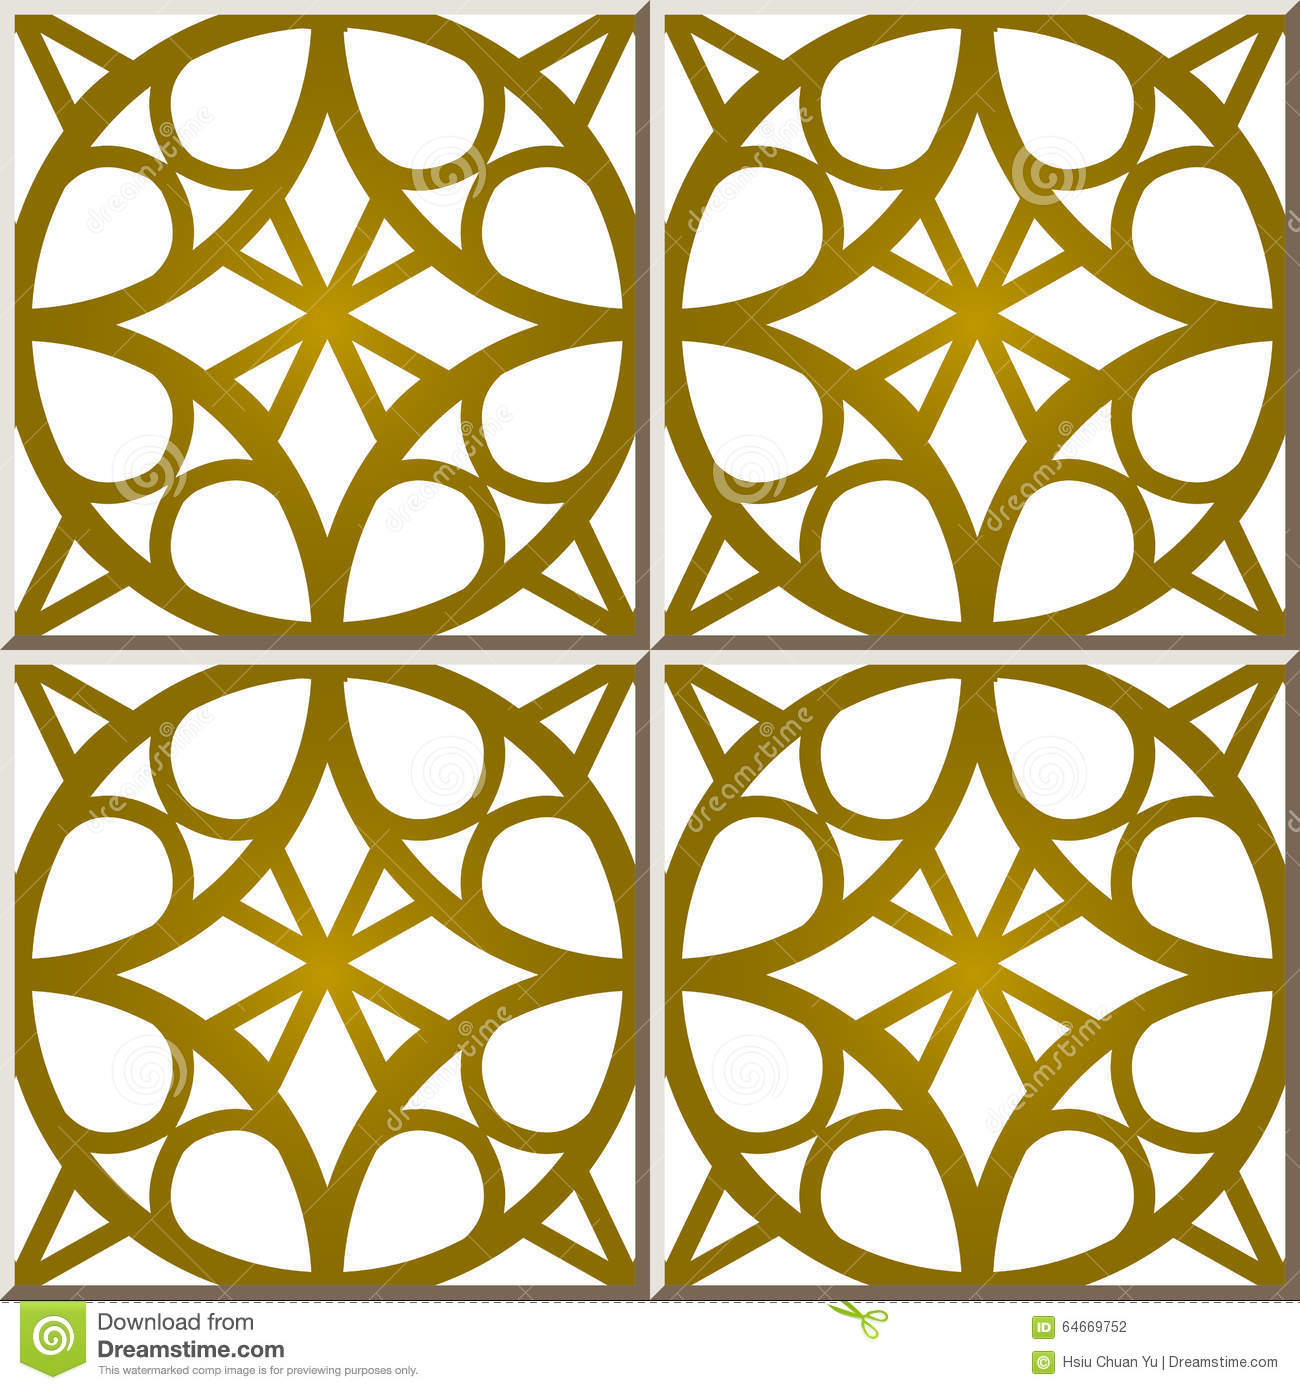 Vintage Seamless Wall Tiles Of Golden Round Frame, Moroccan ...